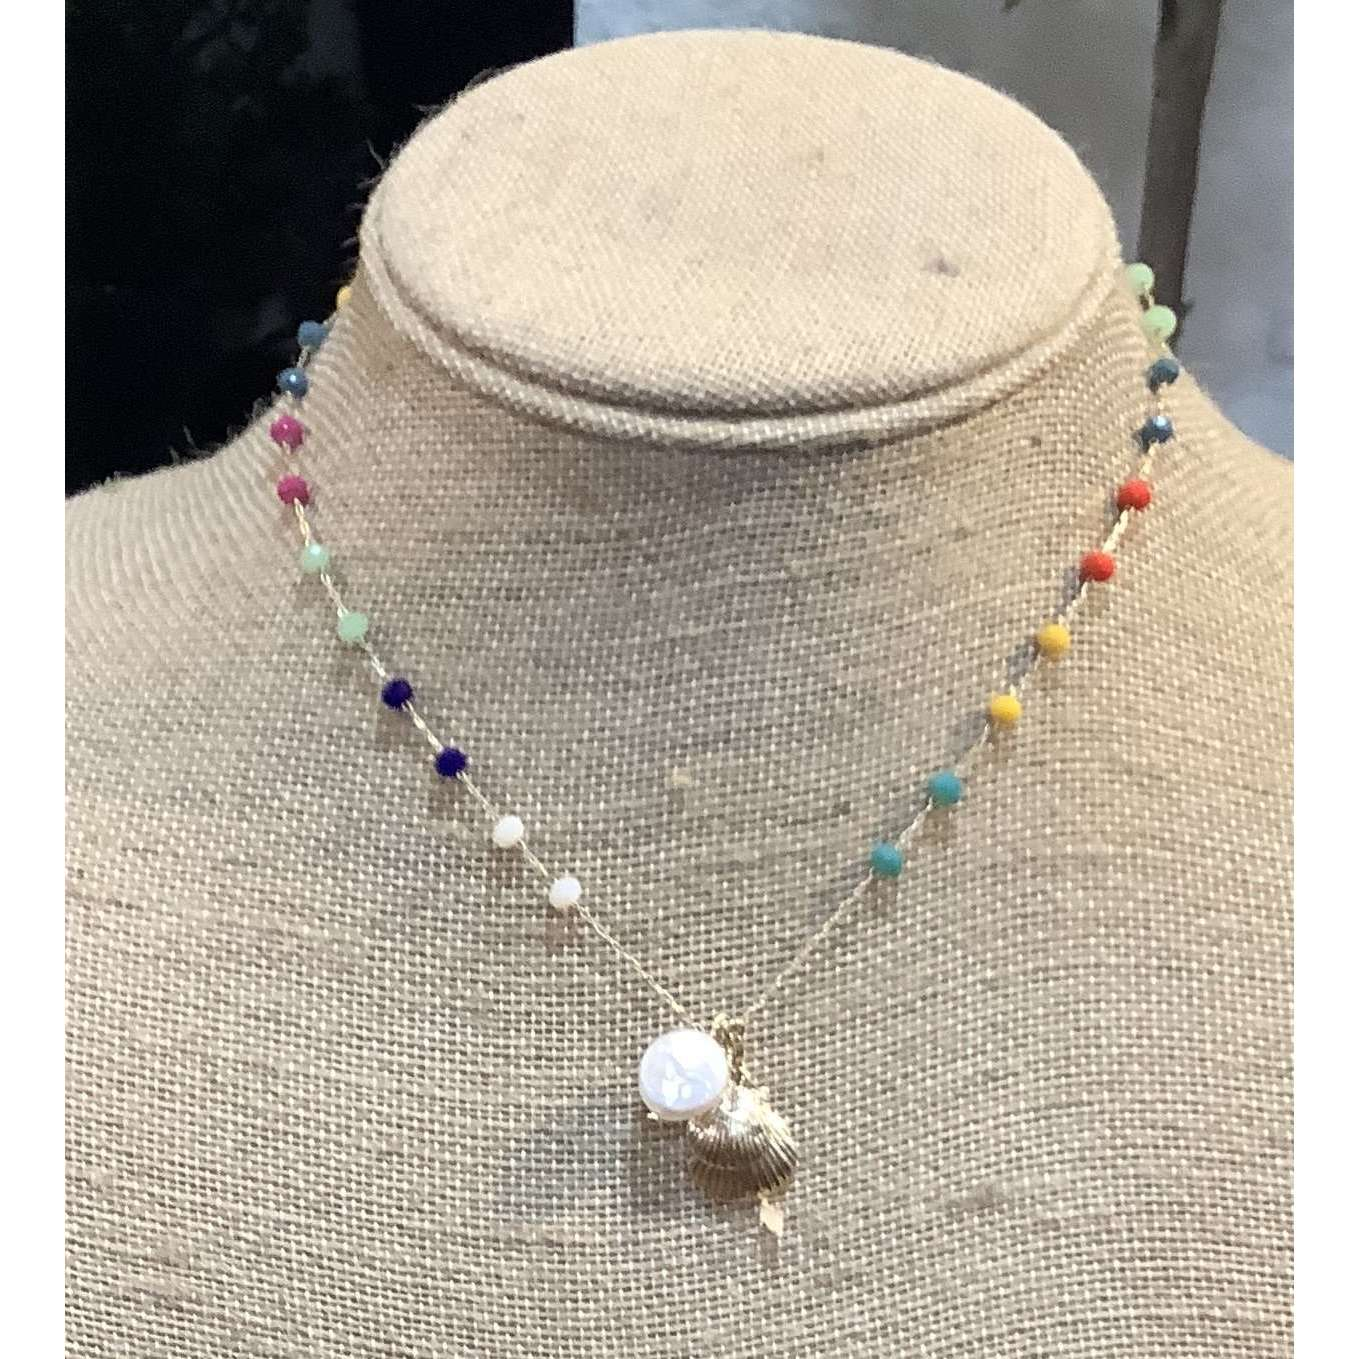 Small multi-color necklace - Little Prairie Girl